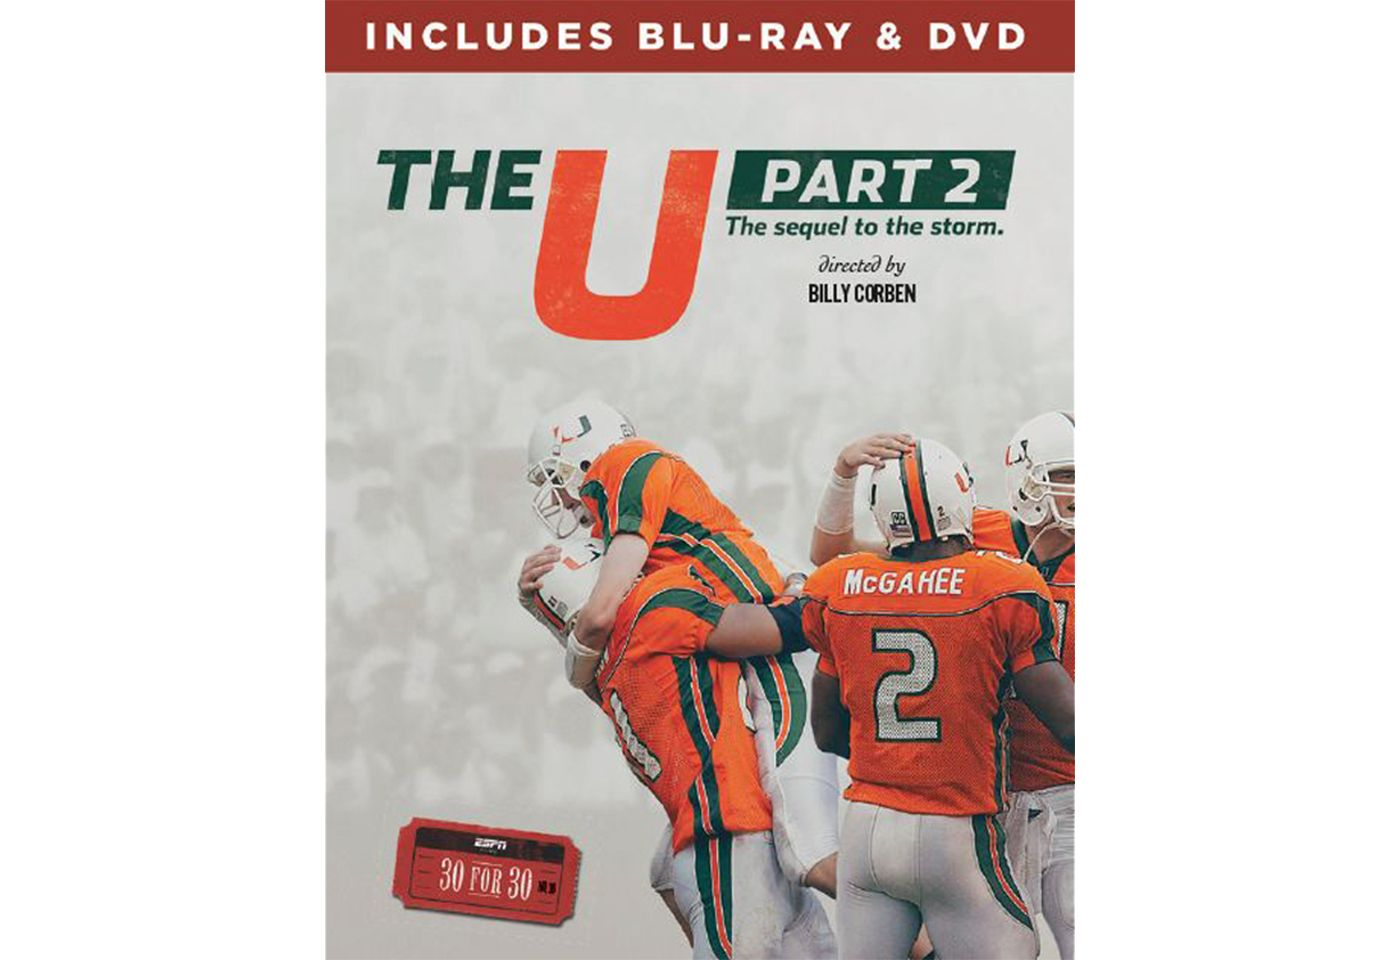 ESPN Films 30 for 30: The U, Part 2 DVD and Blu-ray Combo